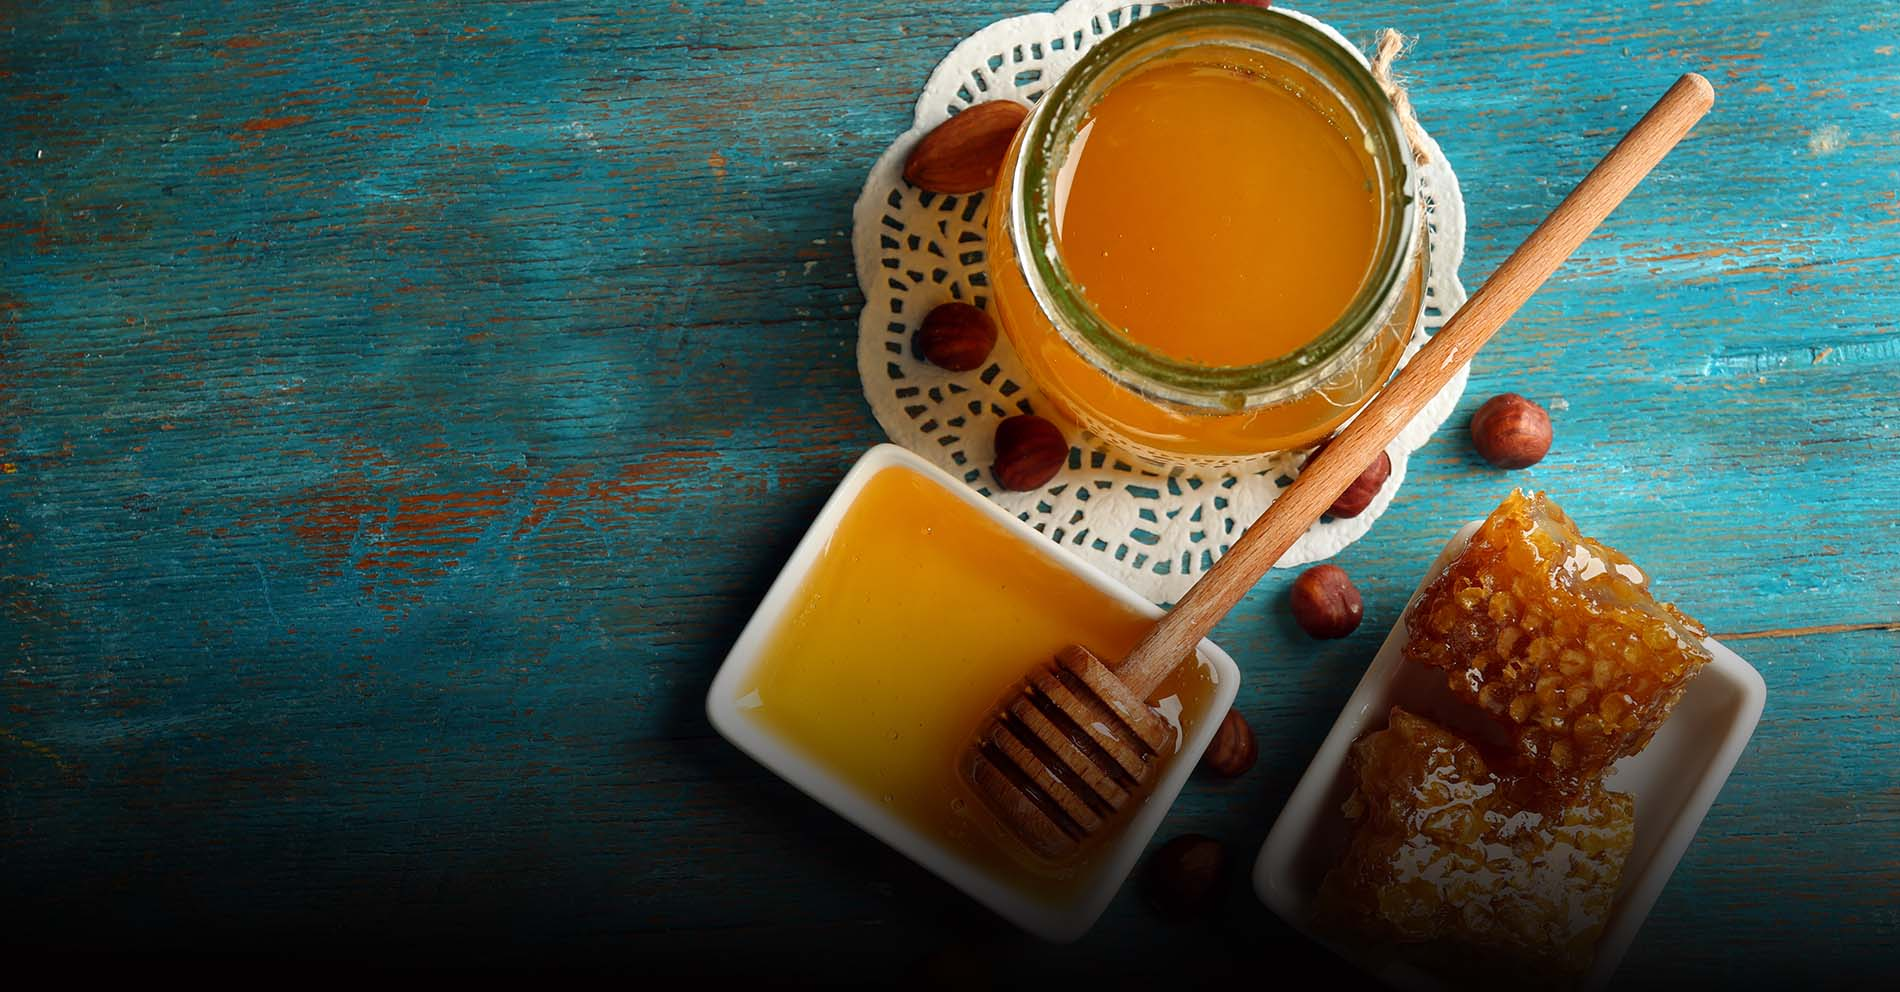 A Senior's Guide to the Goodness of Honey